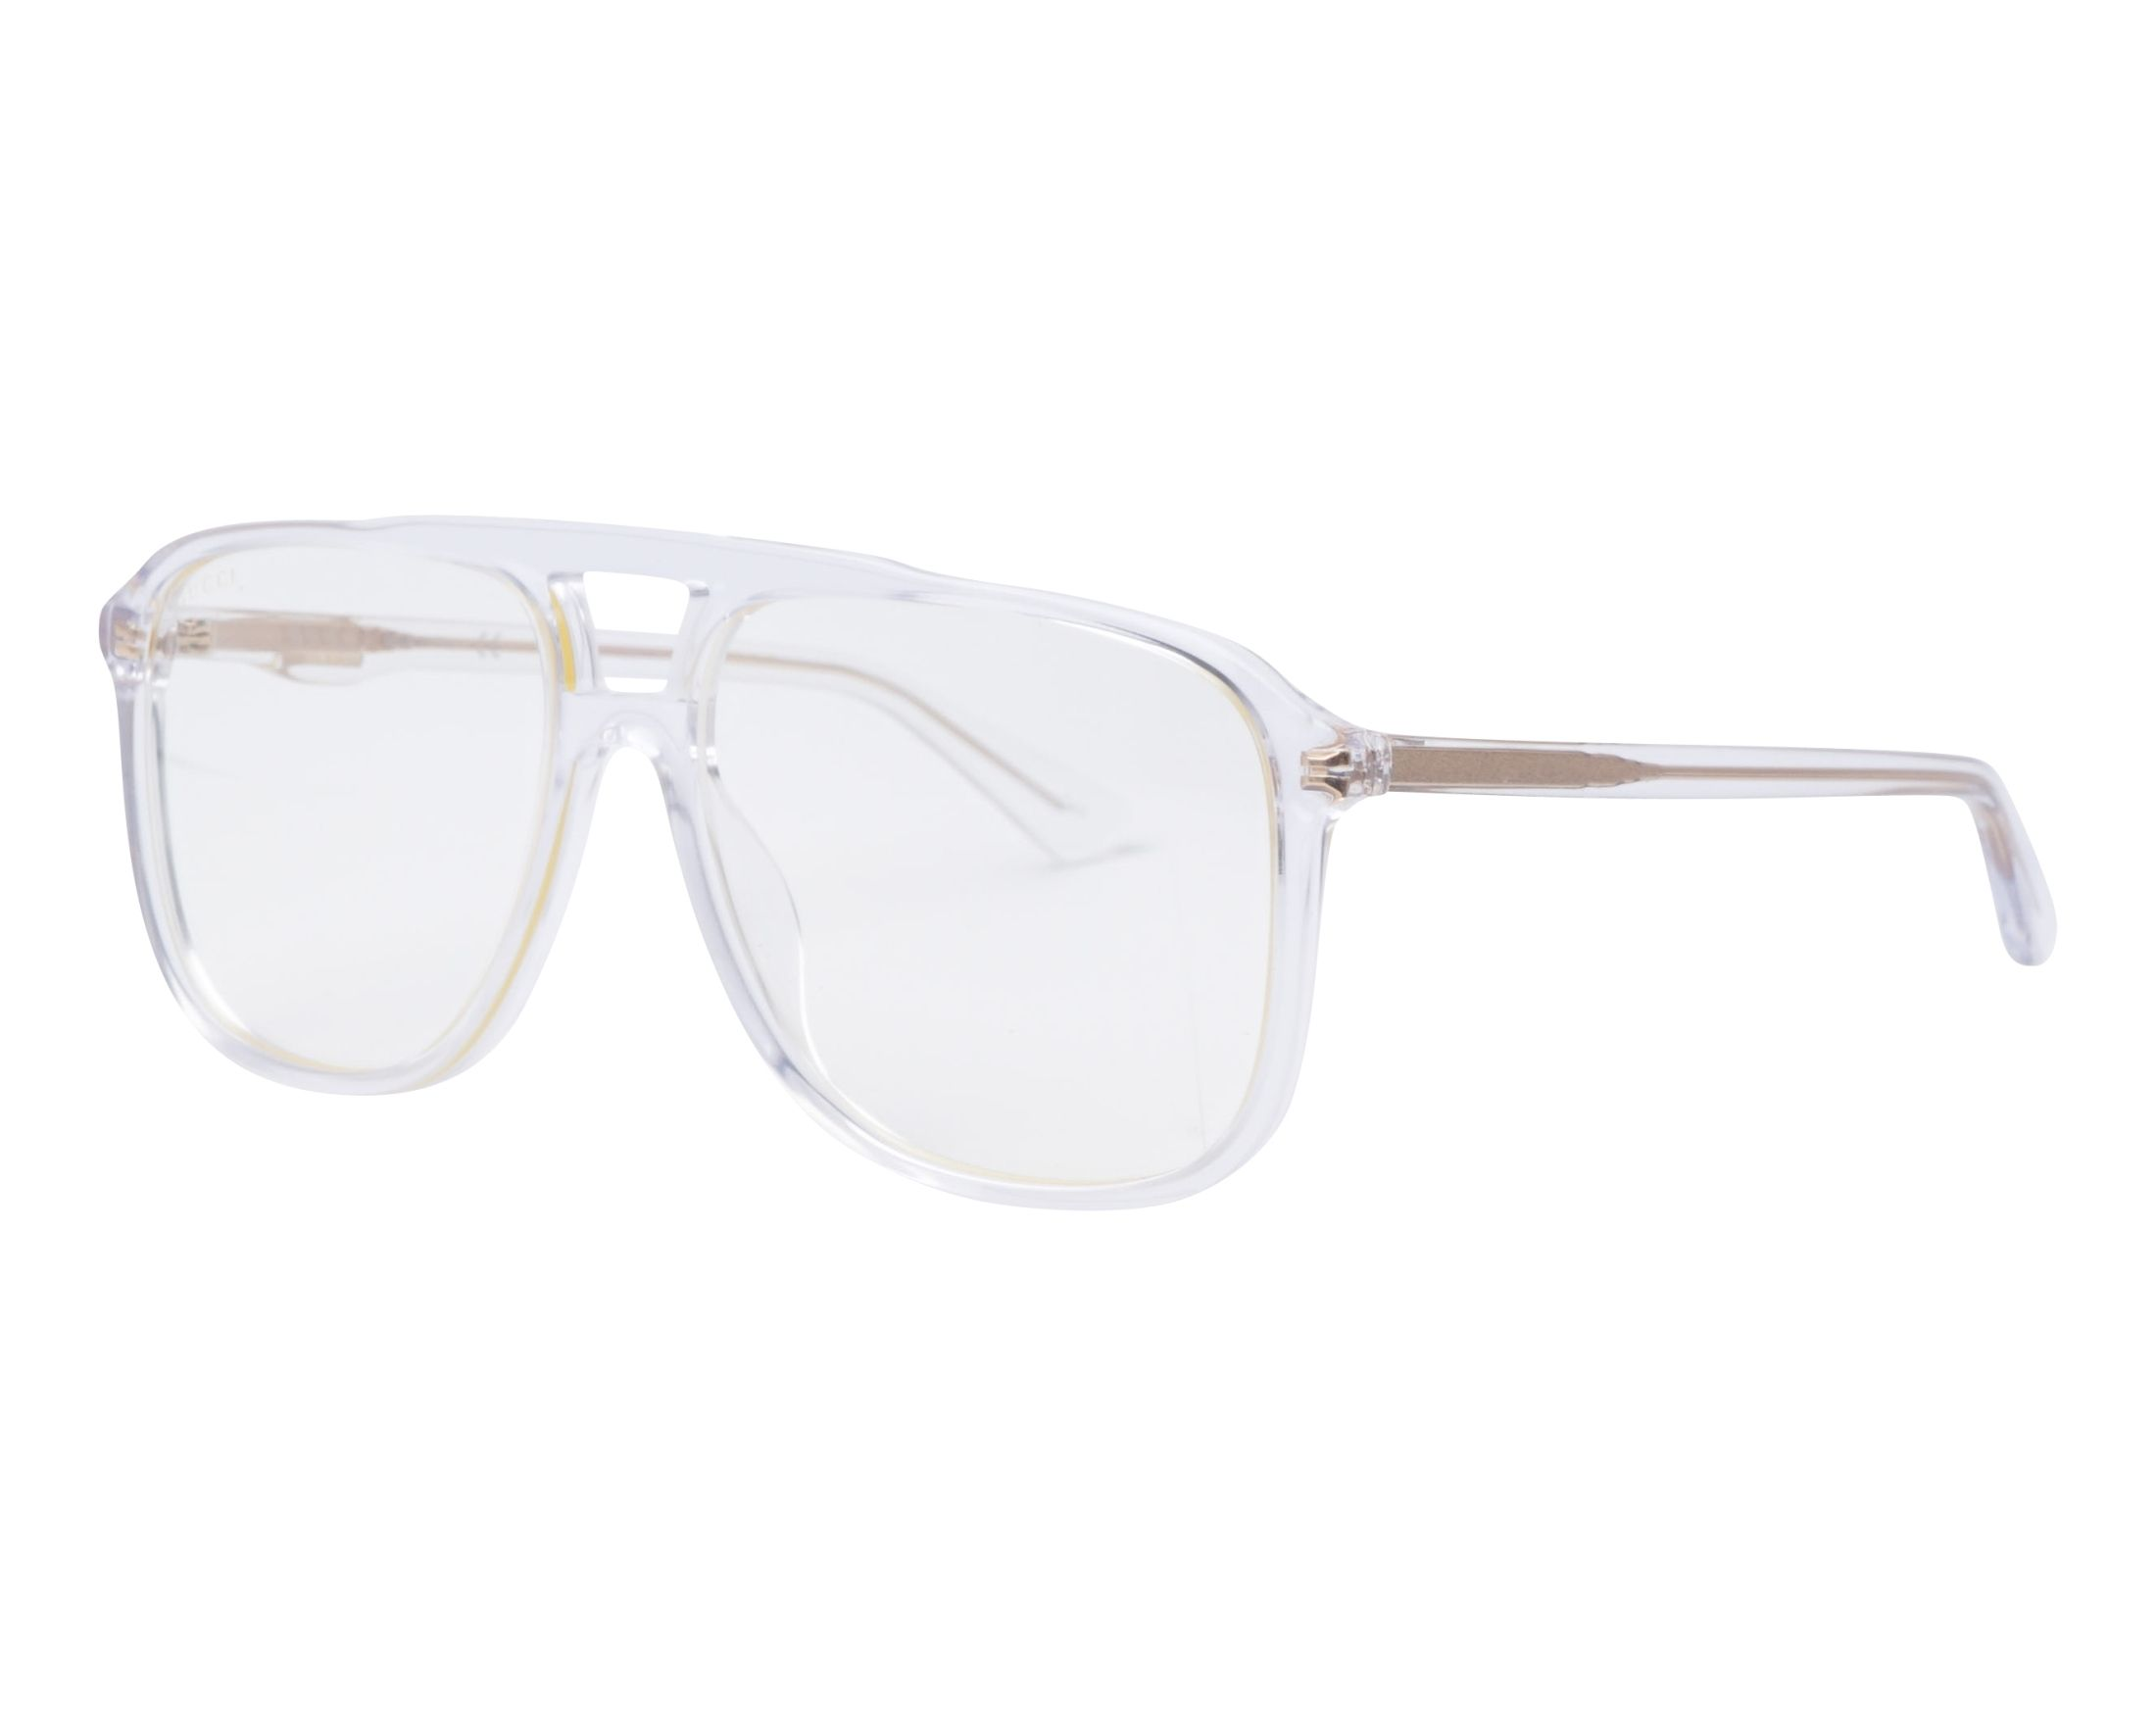 45456dca2c8 eyeglasses Gucci GG-0262-S 006 58-16 Crystal profile view